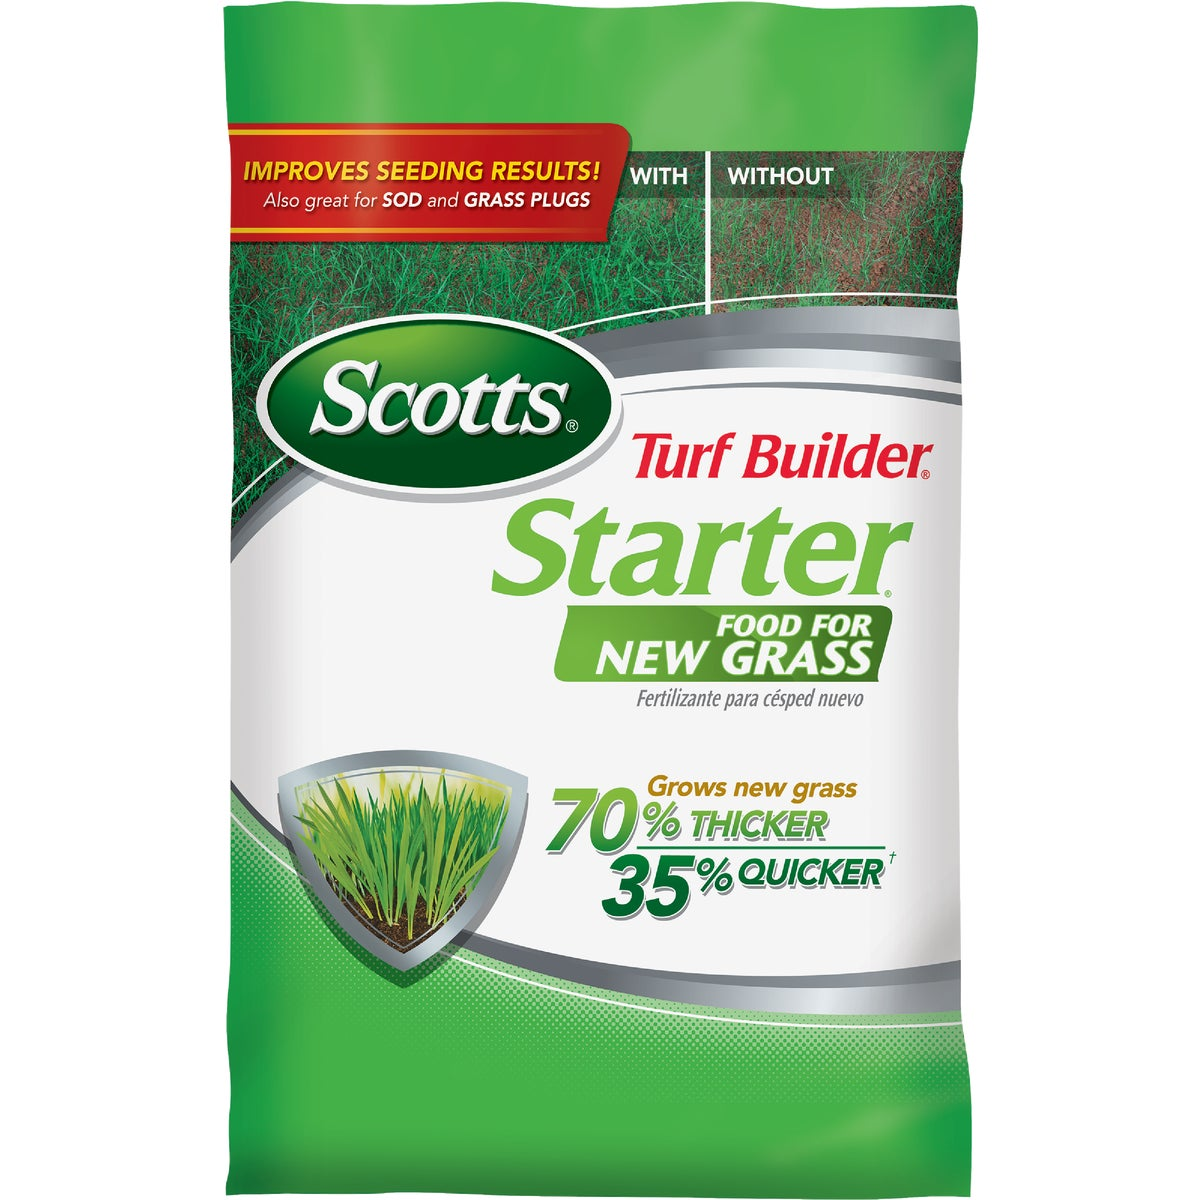 1M TB STARTER FERTILIZER - 21701 by Scotts Company